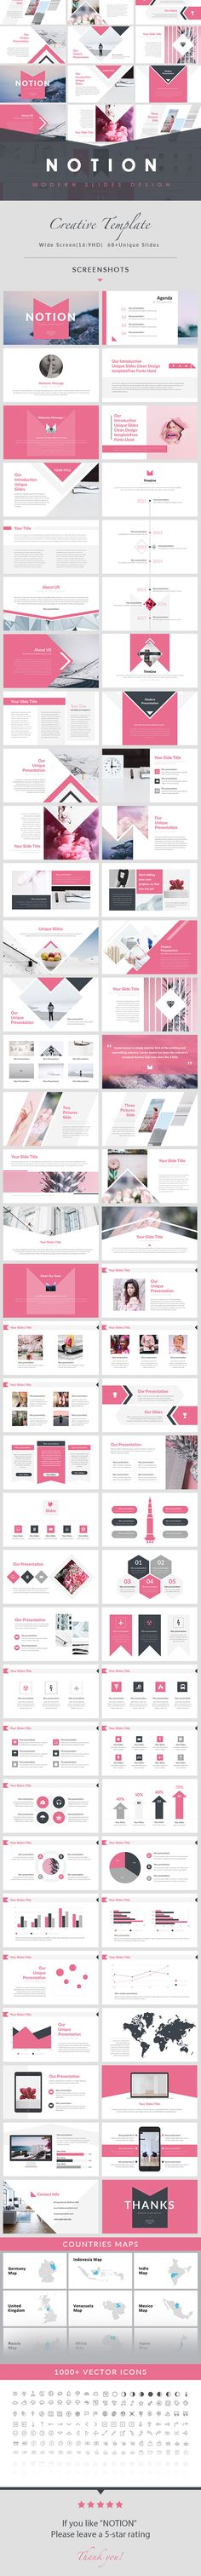 NOTION - Simple Creative PowerPoint Template - Creative PowerPoint Templates